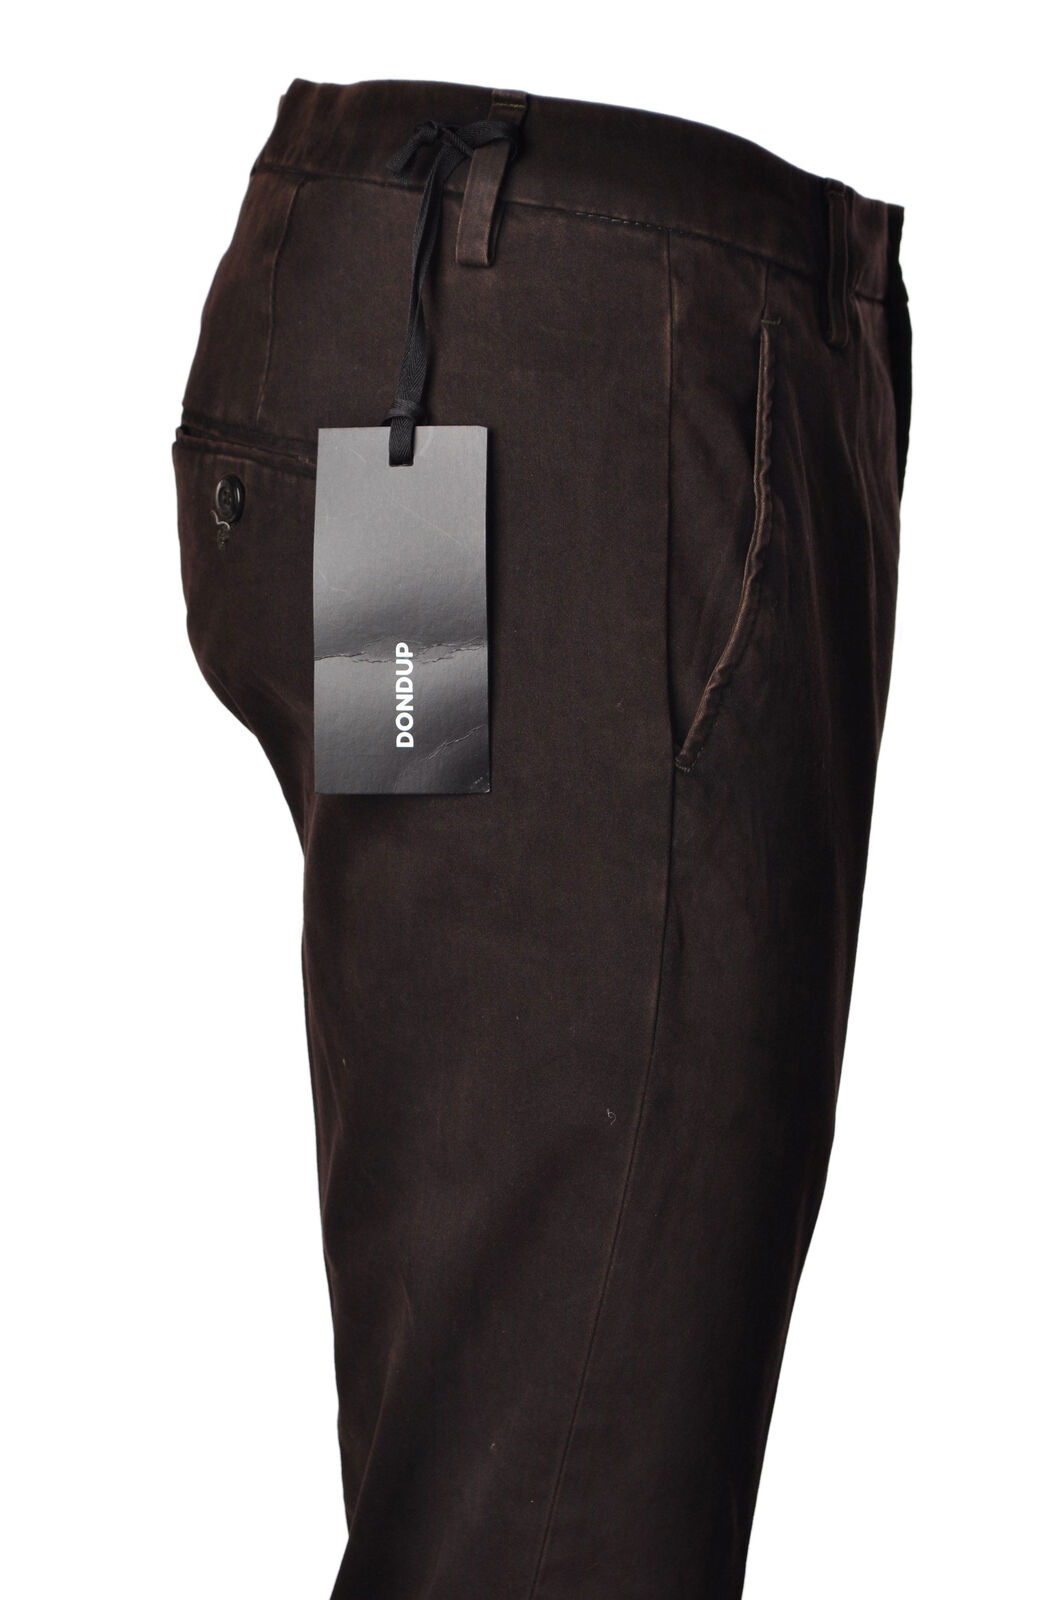 Dondup - Pants-Pants - Man - Brown - 511315C184640